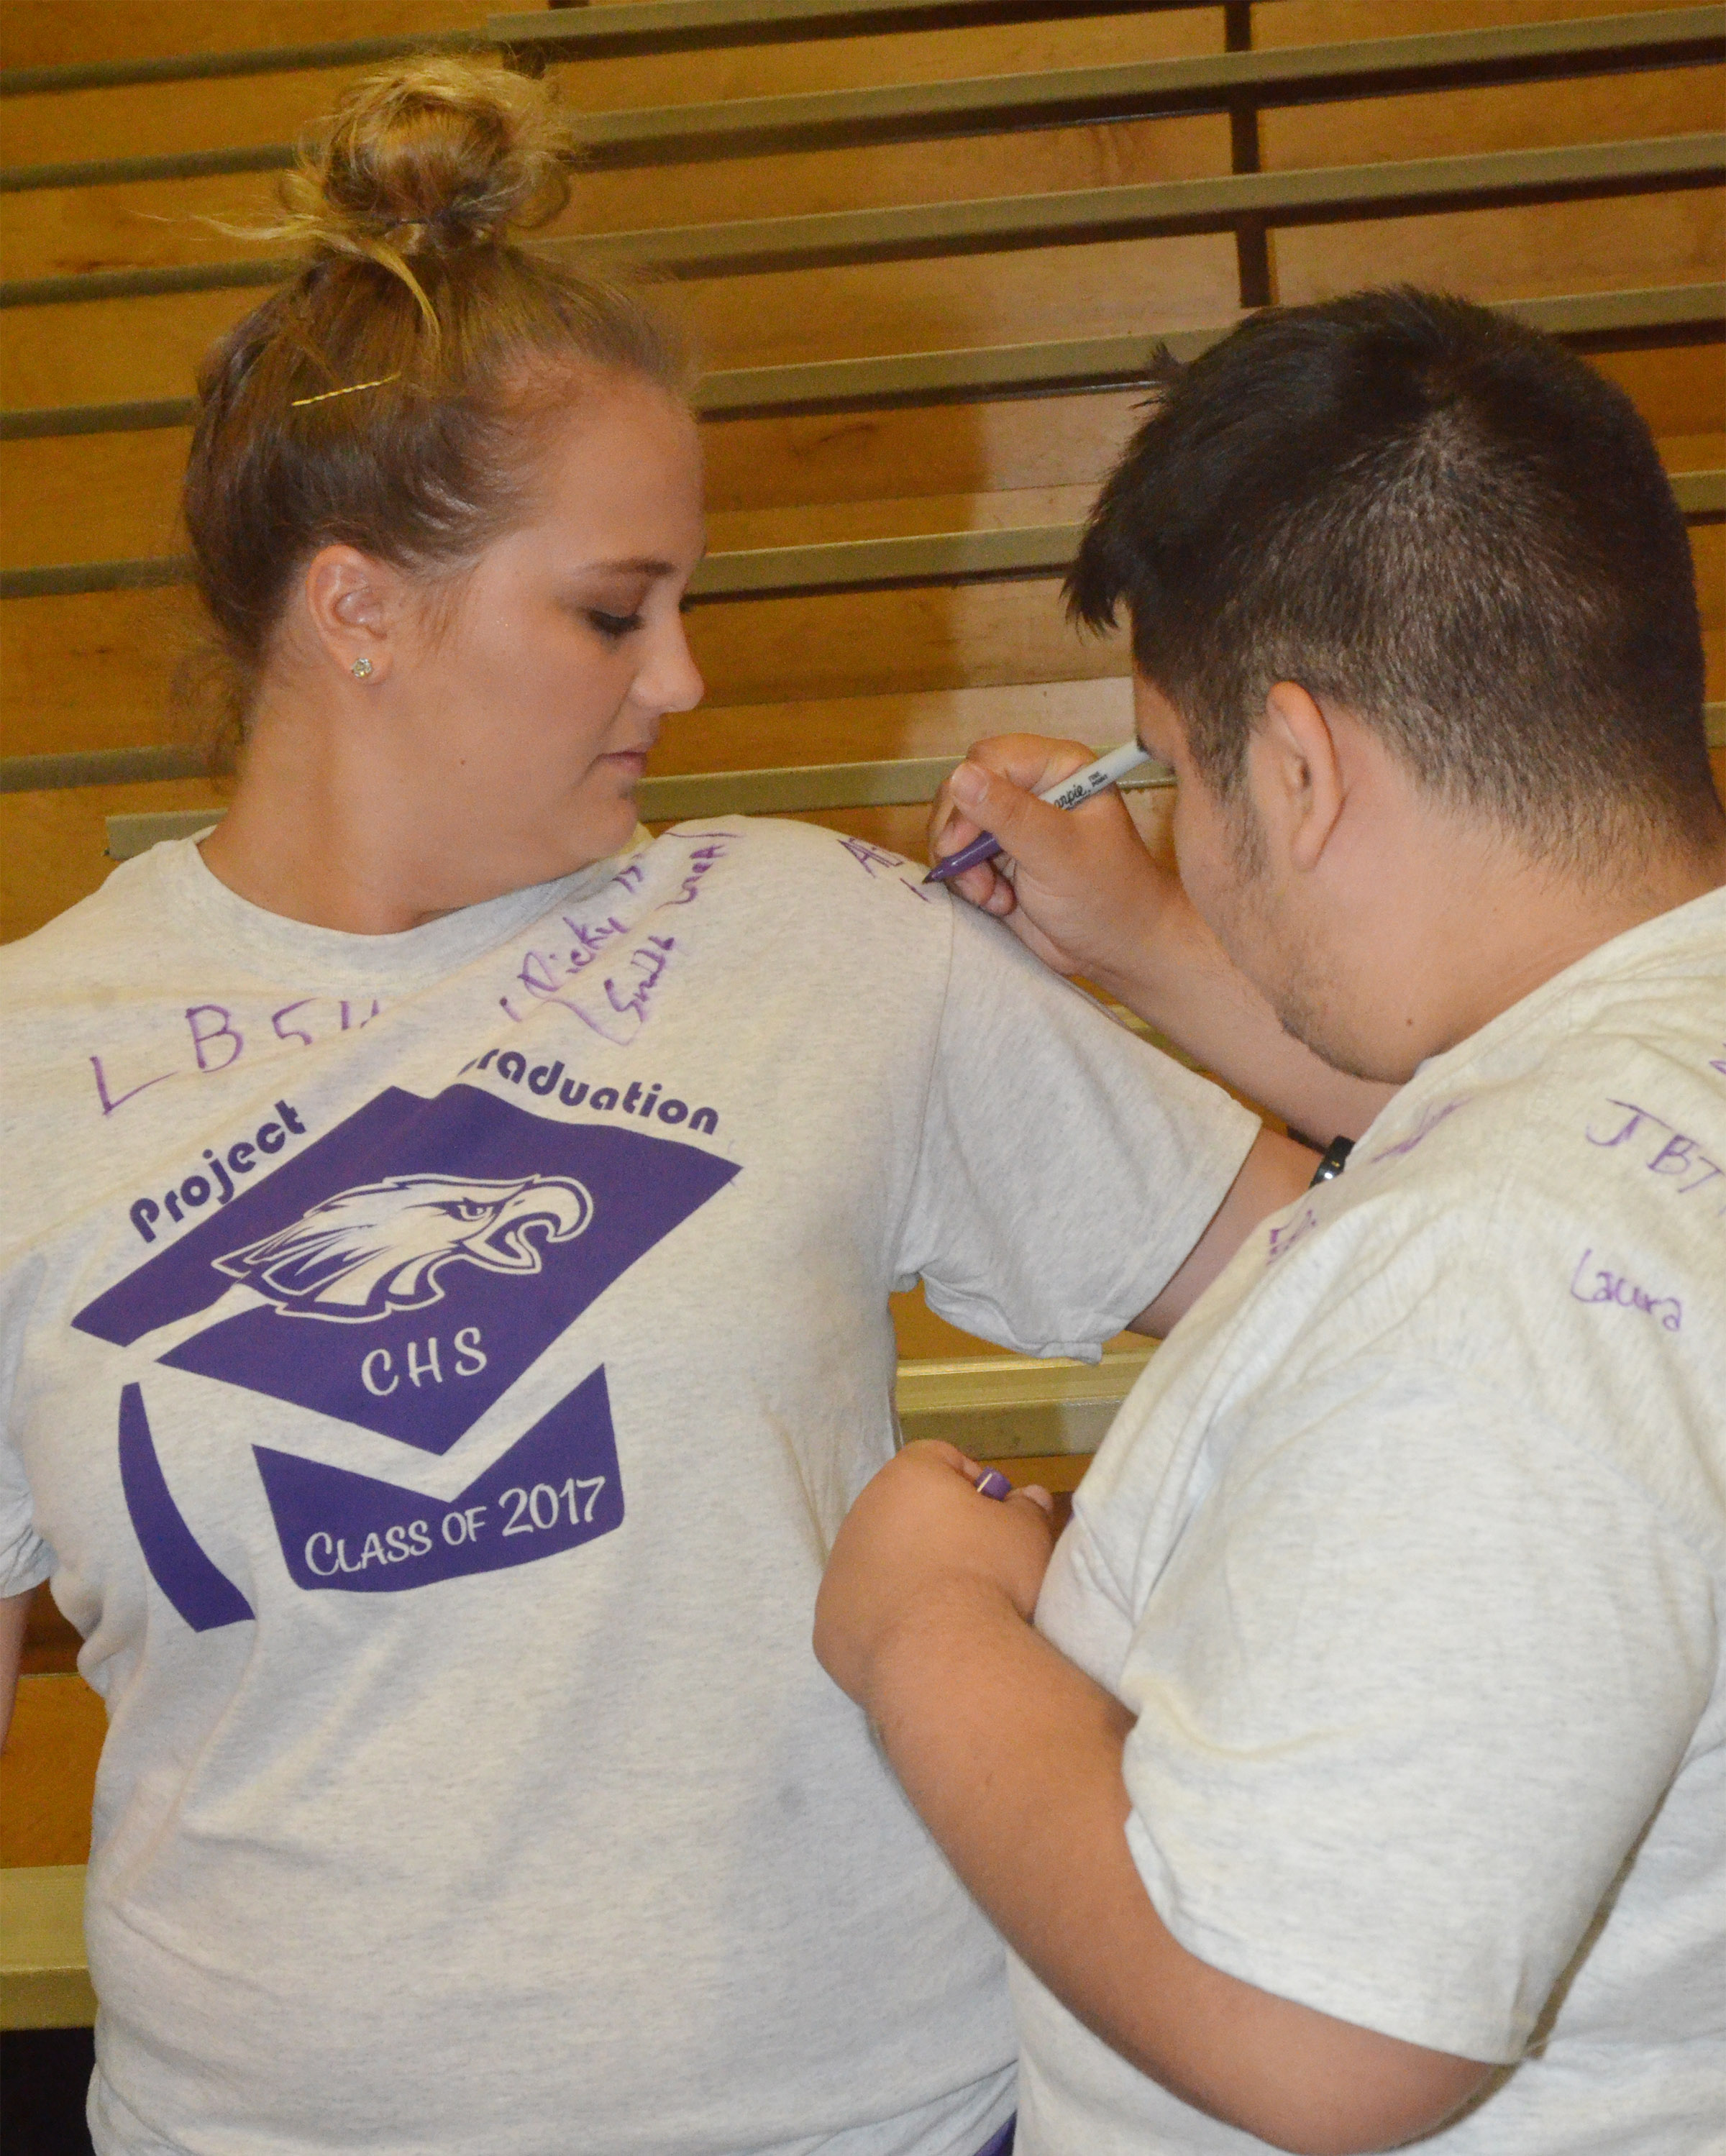 CHS senior Robert Tungate signs Brenna Wethington's project graduation t-shirt.